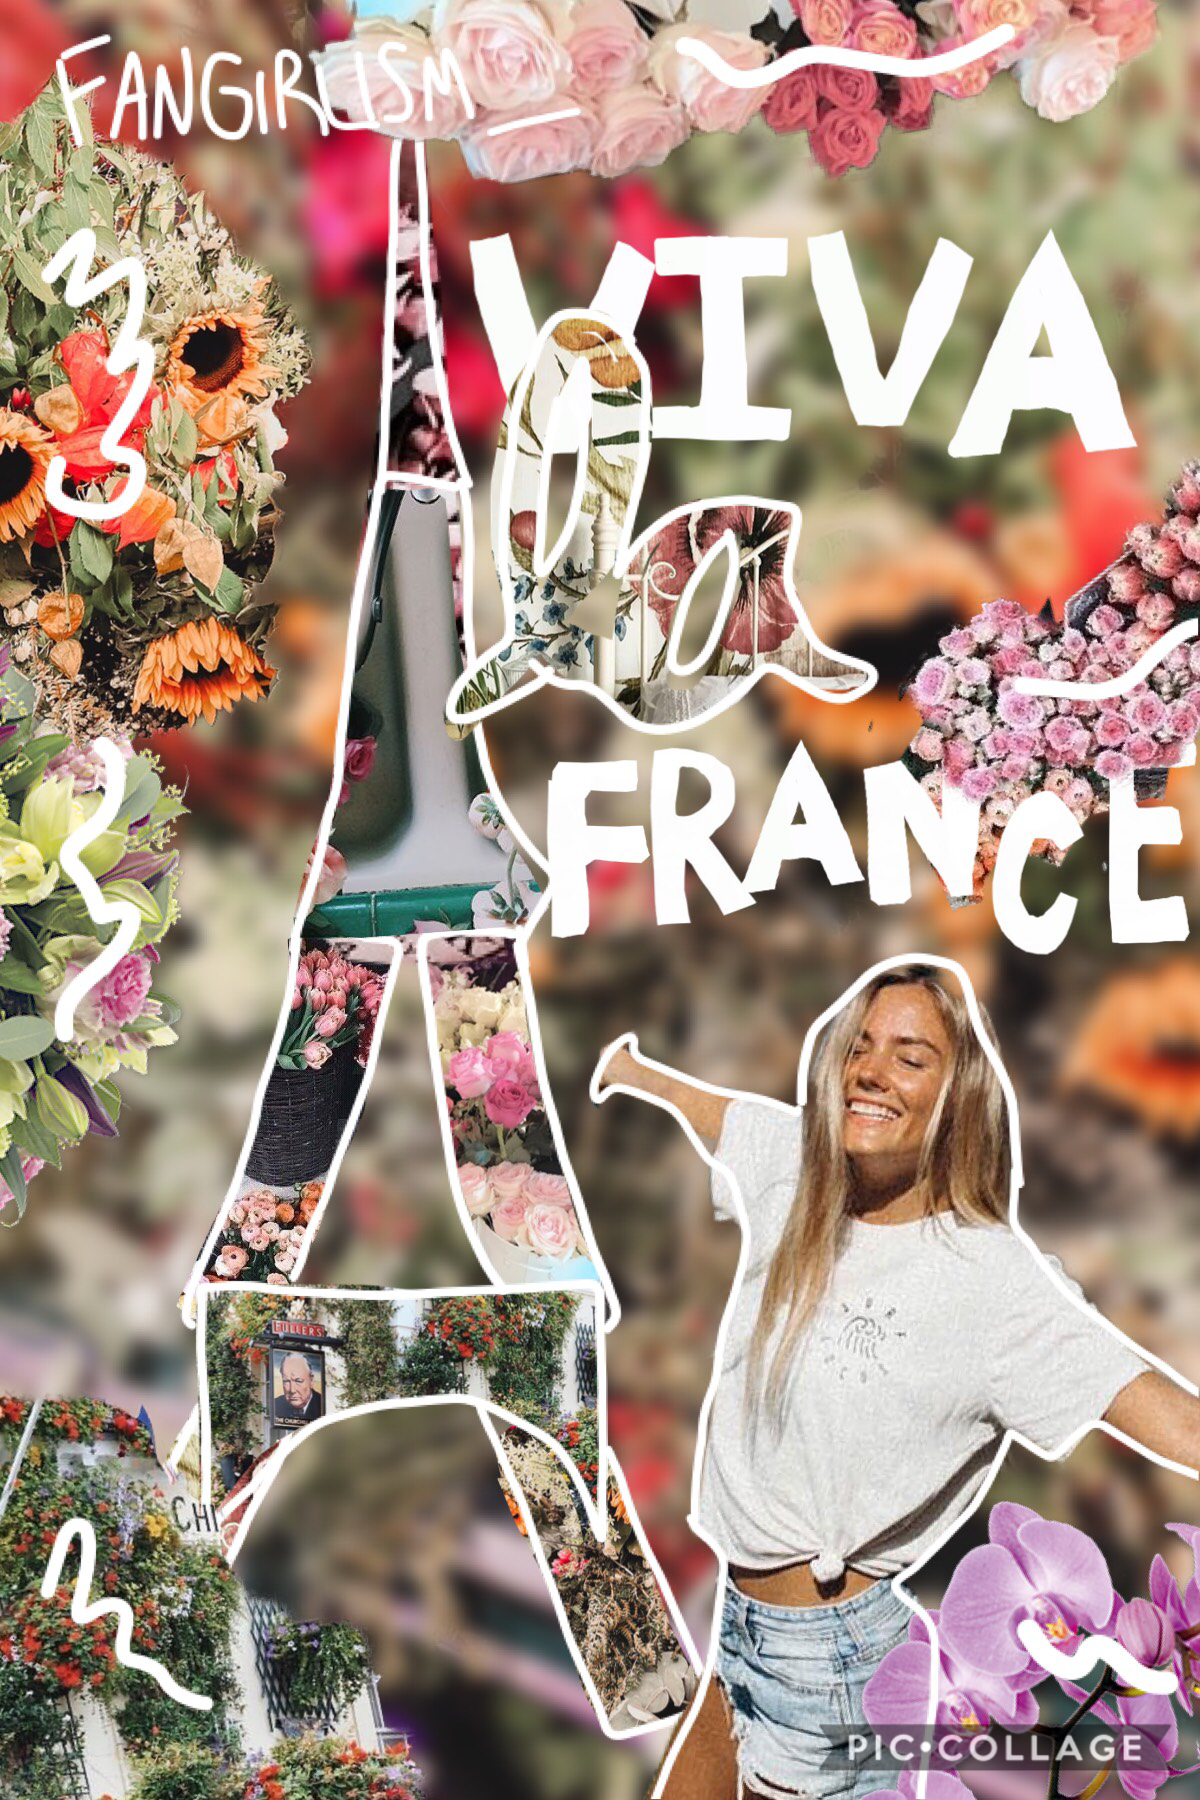 GUYS I ate this rlly cool French yogurt today and it inspired this edit *searches ten hours for a yogurt emoji* *finds out there isn't one* rip my life lol😂🇫🇷💐